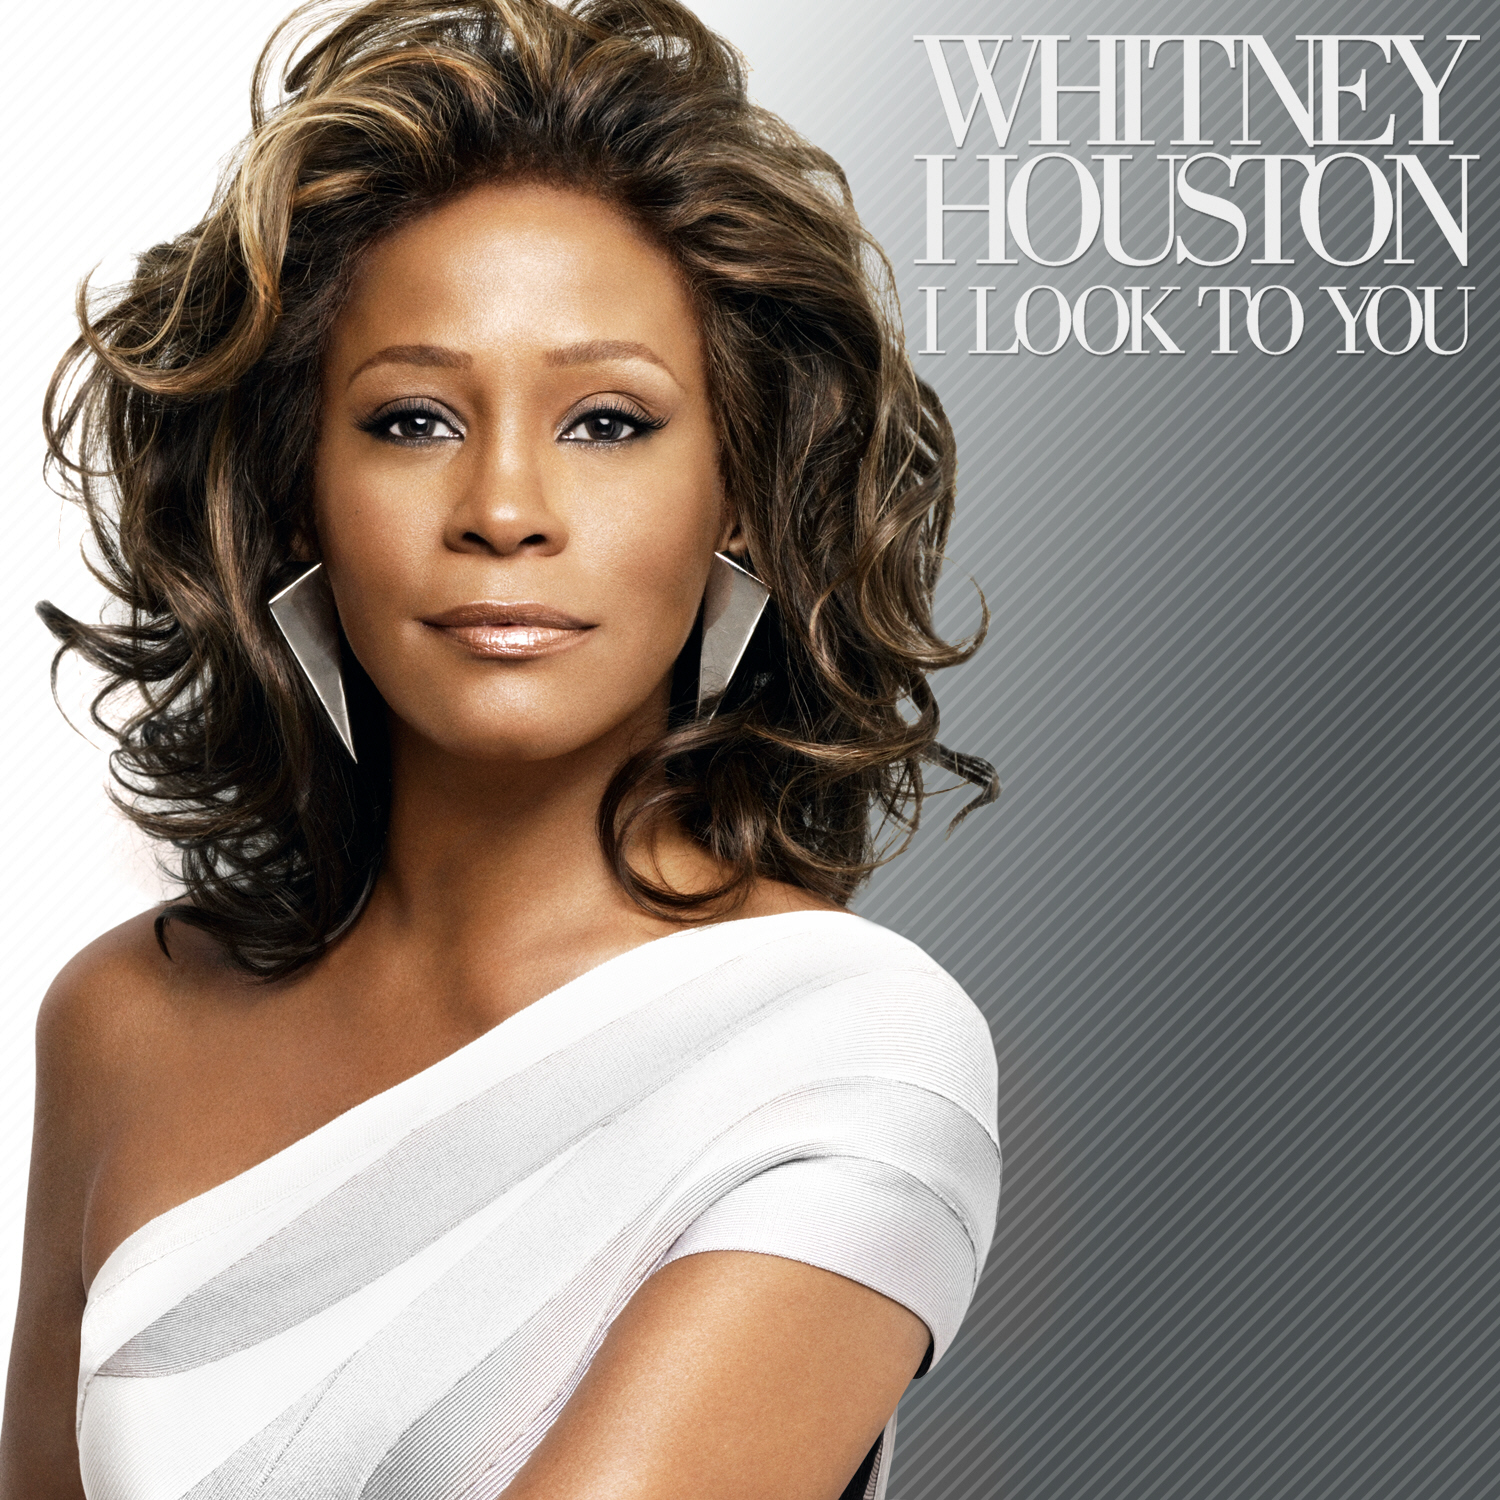 http://www.theplace.ru/archive/whitney_houston/img/WHITNEYHOUSTONCOVER.jpg